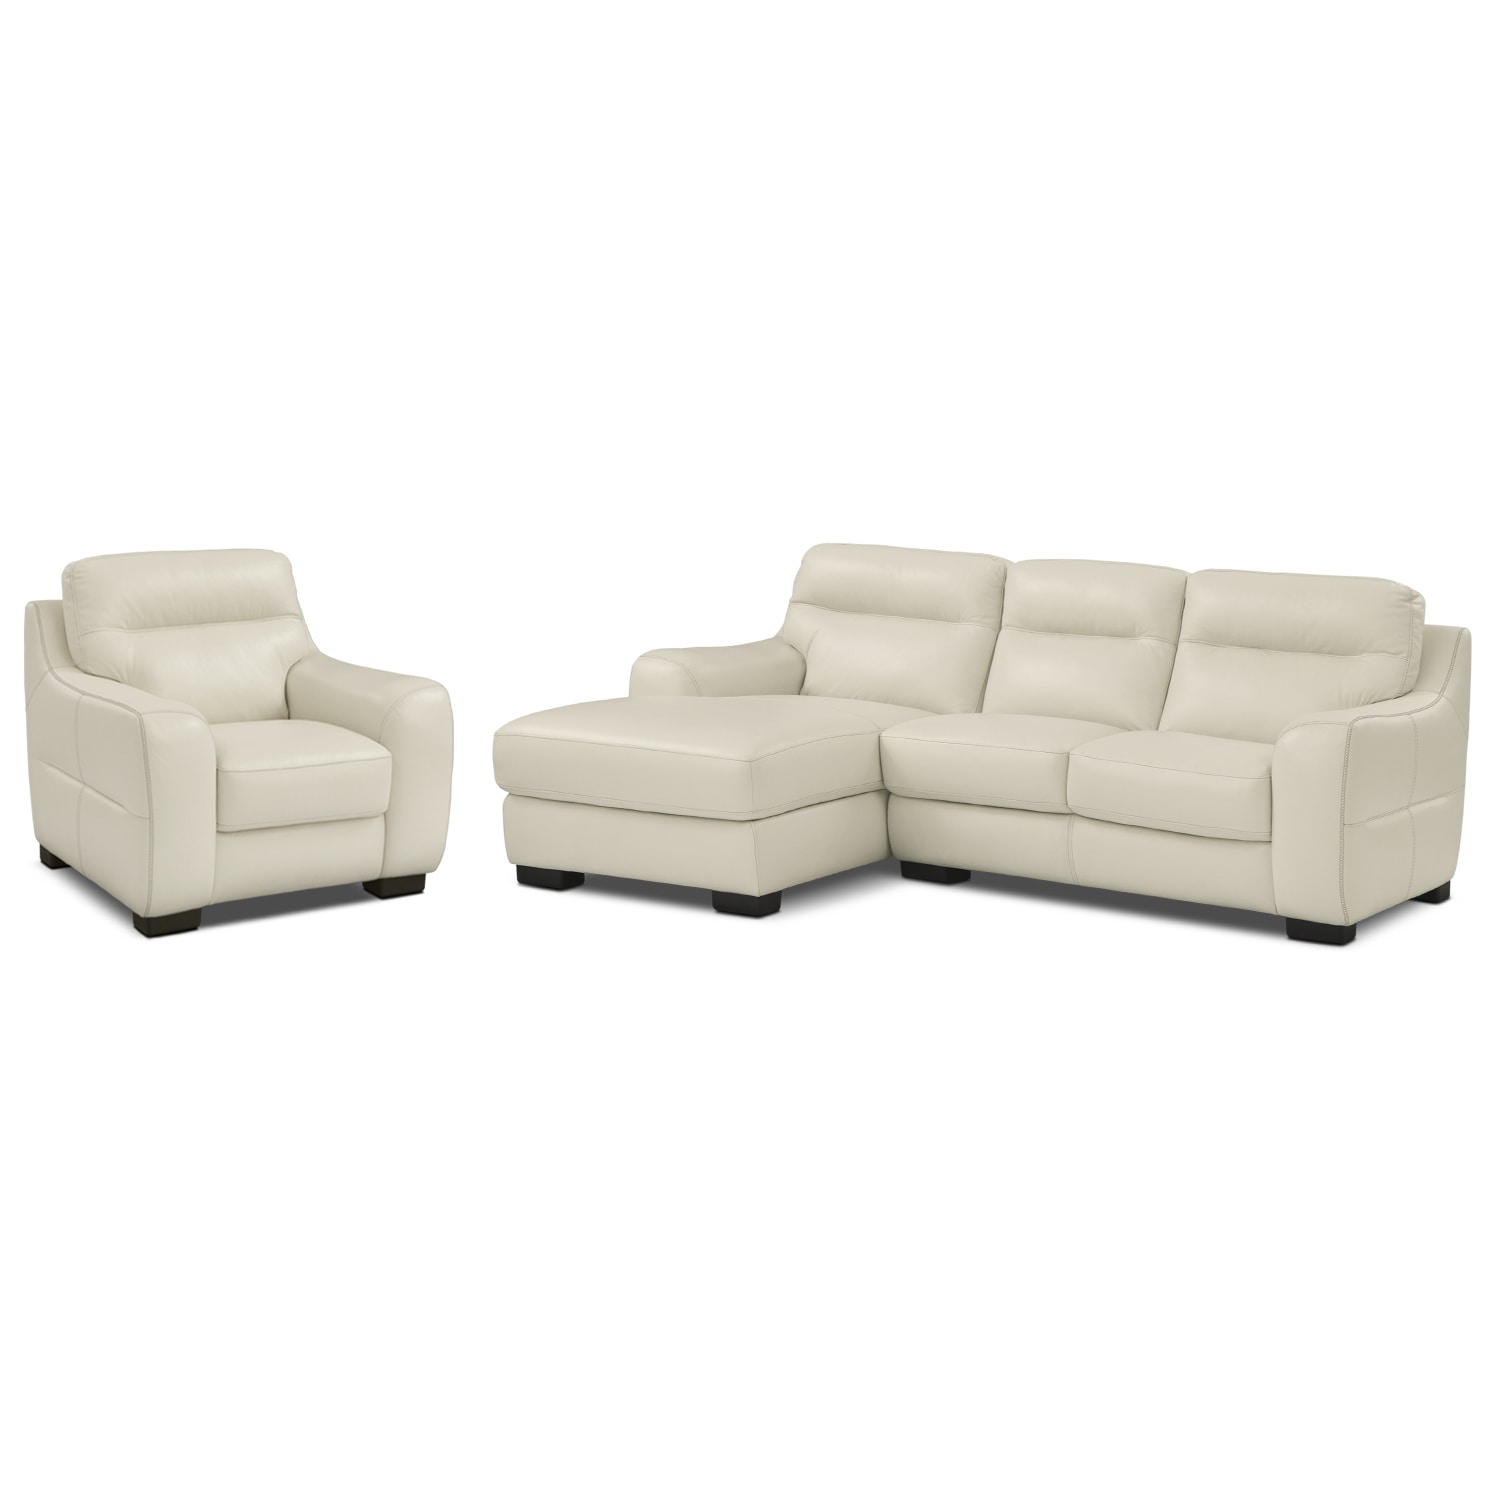 Living Room Furniture - Rocco Snow 2 Pc. Left-Facing Chaise Sectional and Chair